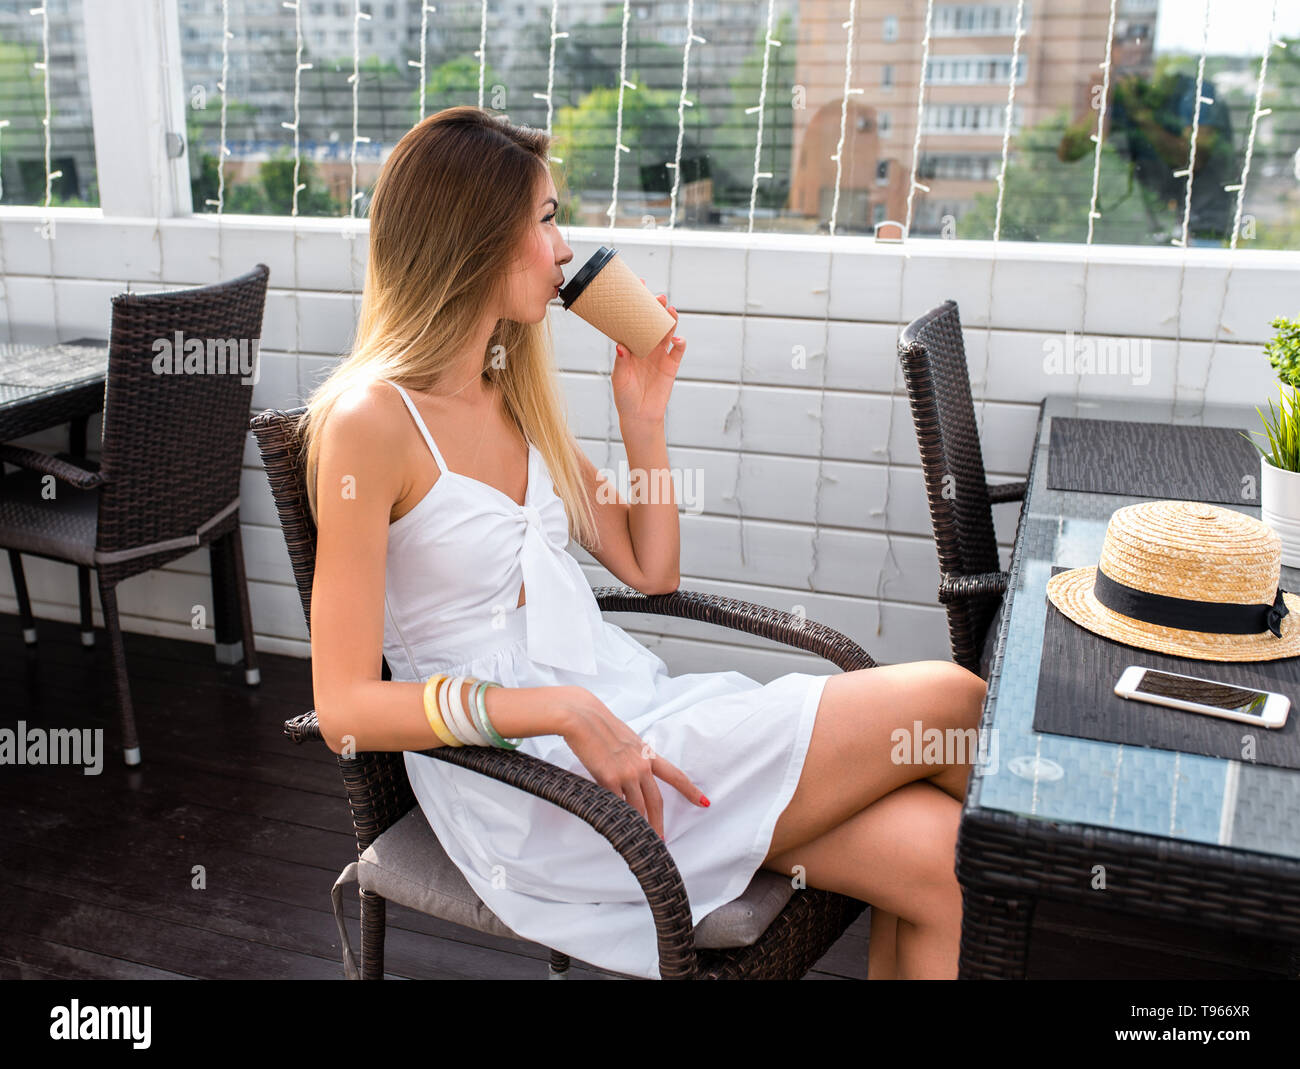 Woman in white dress, drinking coffee tea, breakfast lunch, snack restaurant, summer cafe, sitting. Dreaming thoughts, happy looking, resting after - Stock Image